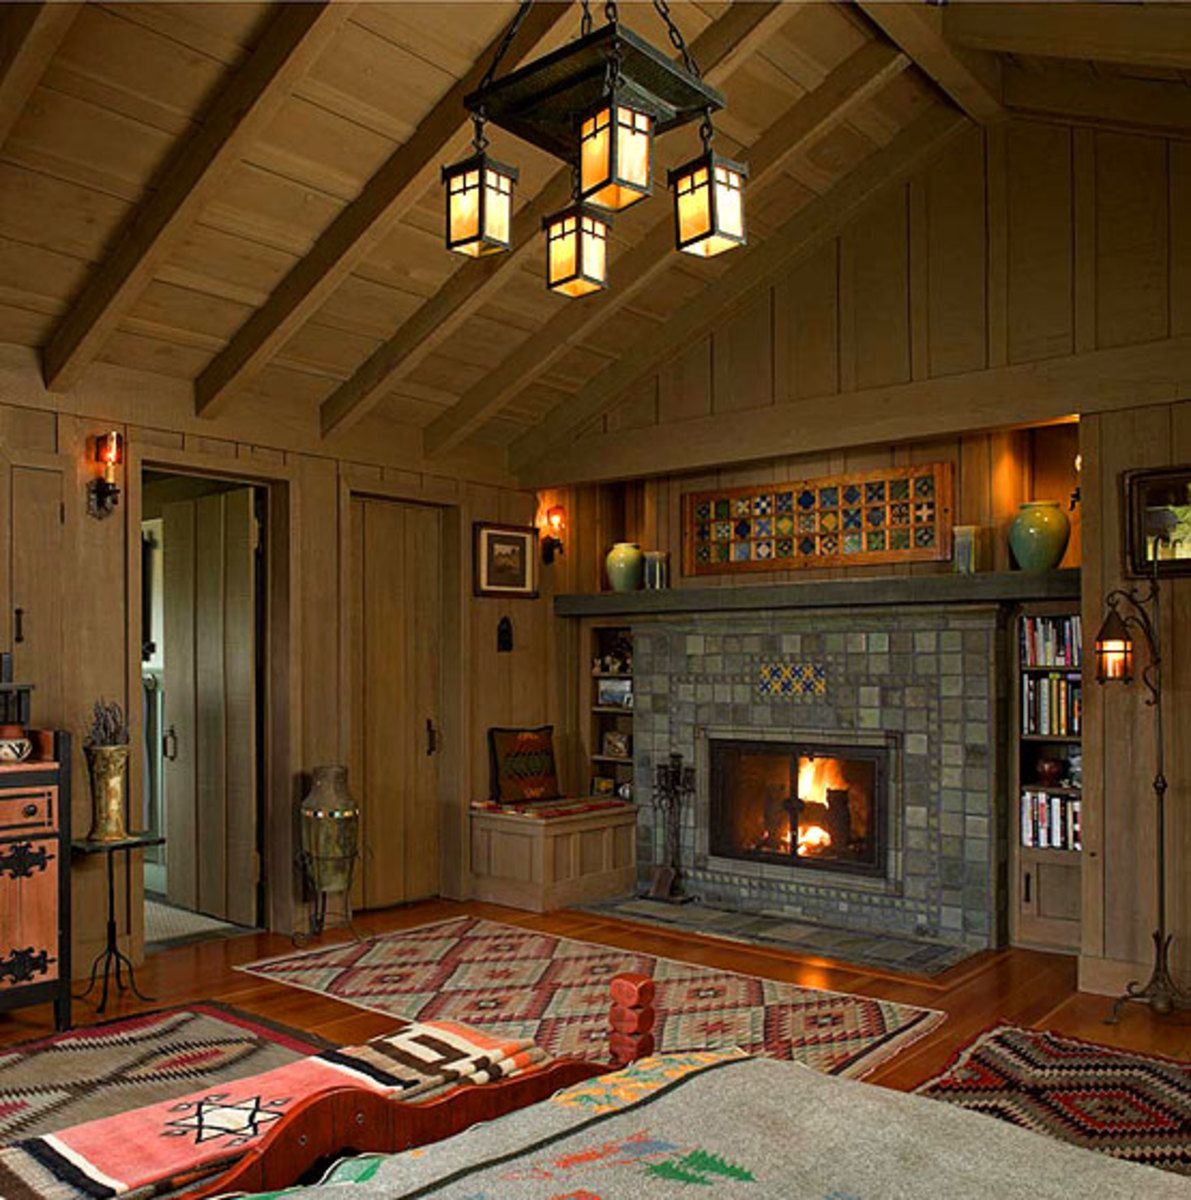 Lighting To Accent & Define Arts & Crafts Interiors (With